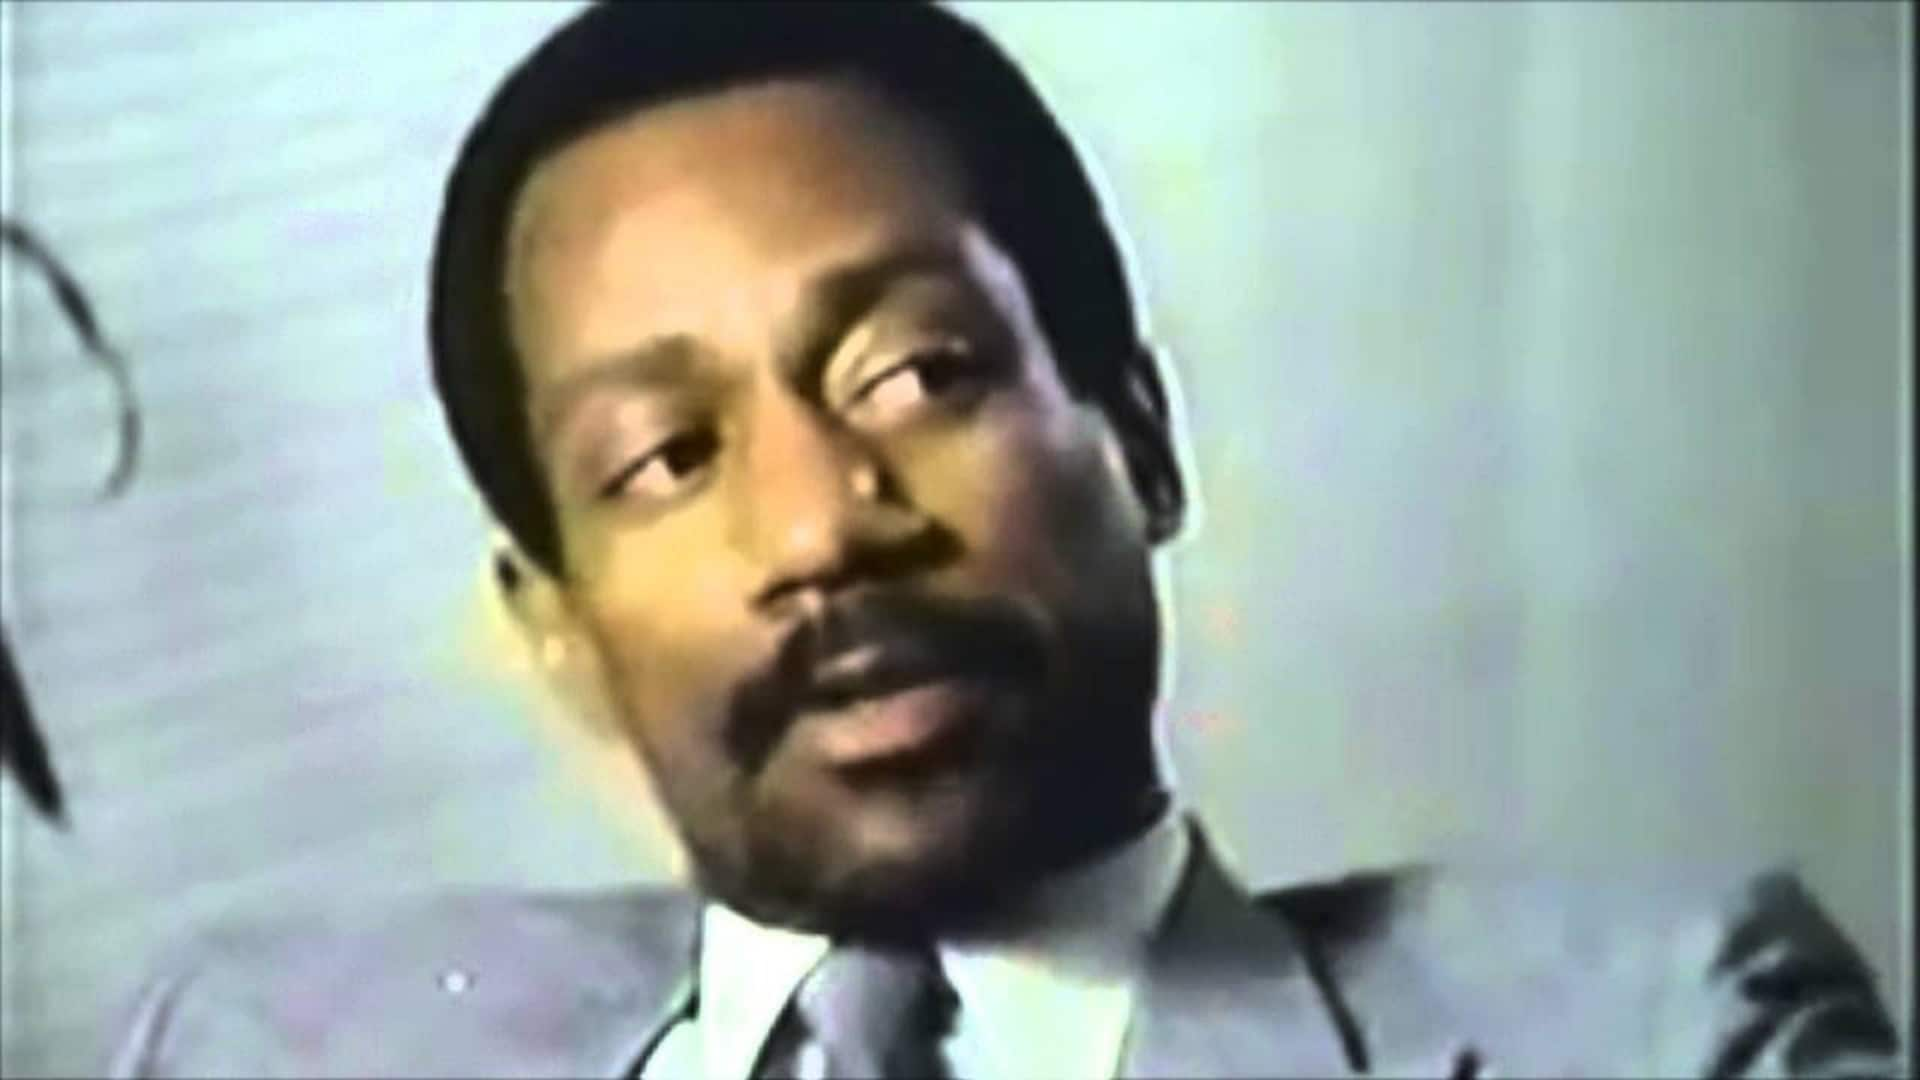 Watch the shocking interview with the real-life Judas of 'Judas and the Black Messiah' - TheGrio